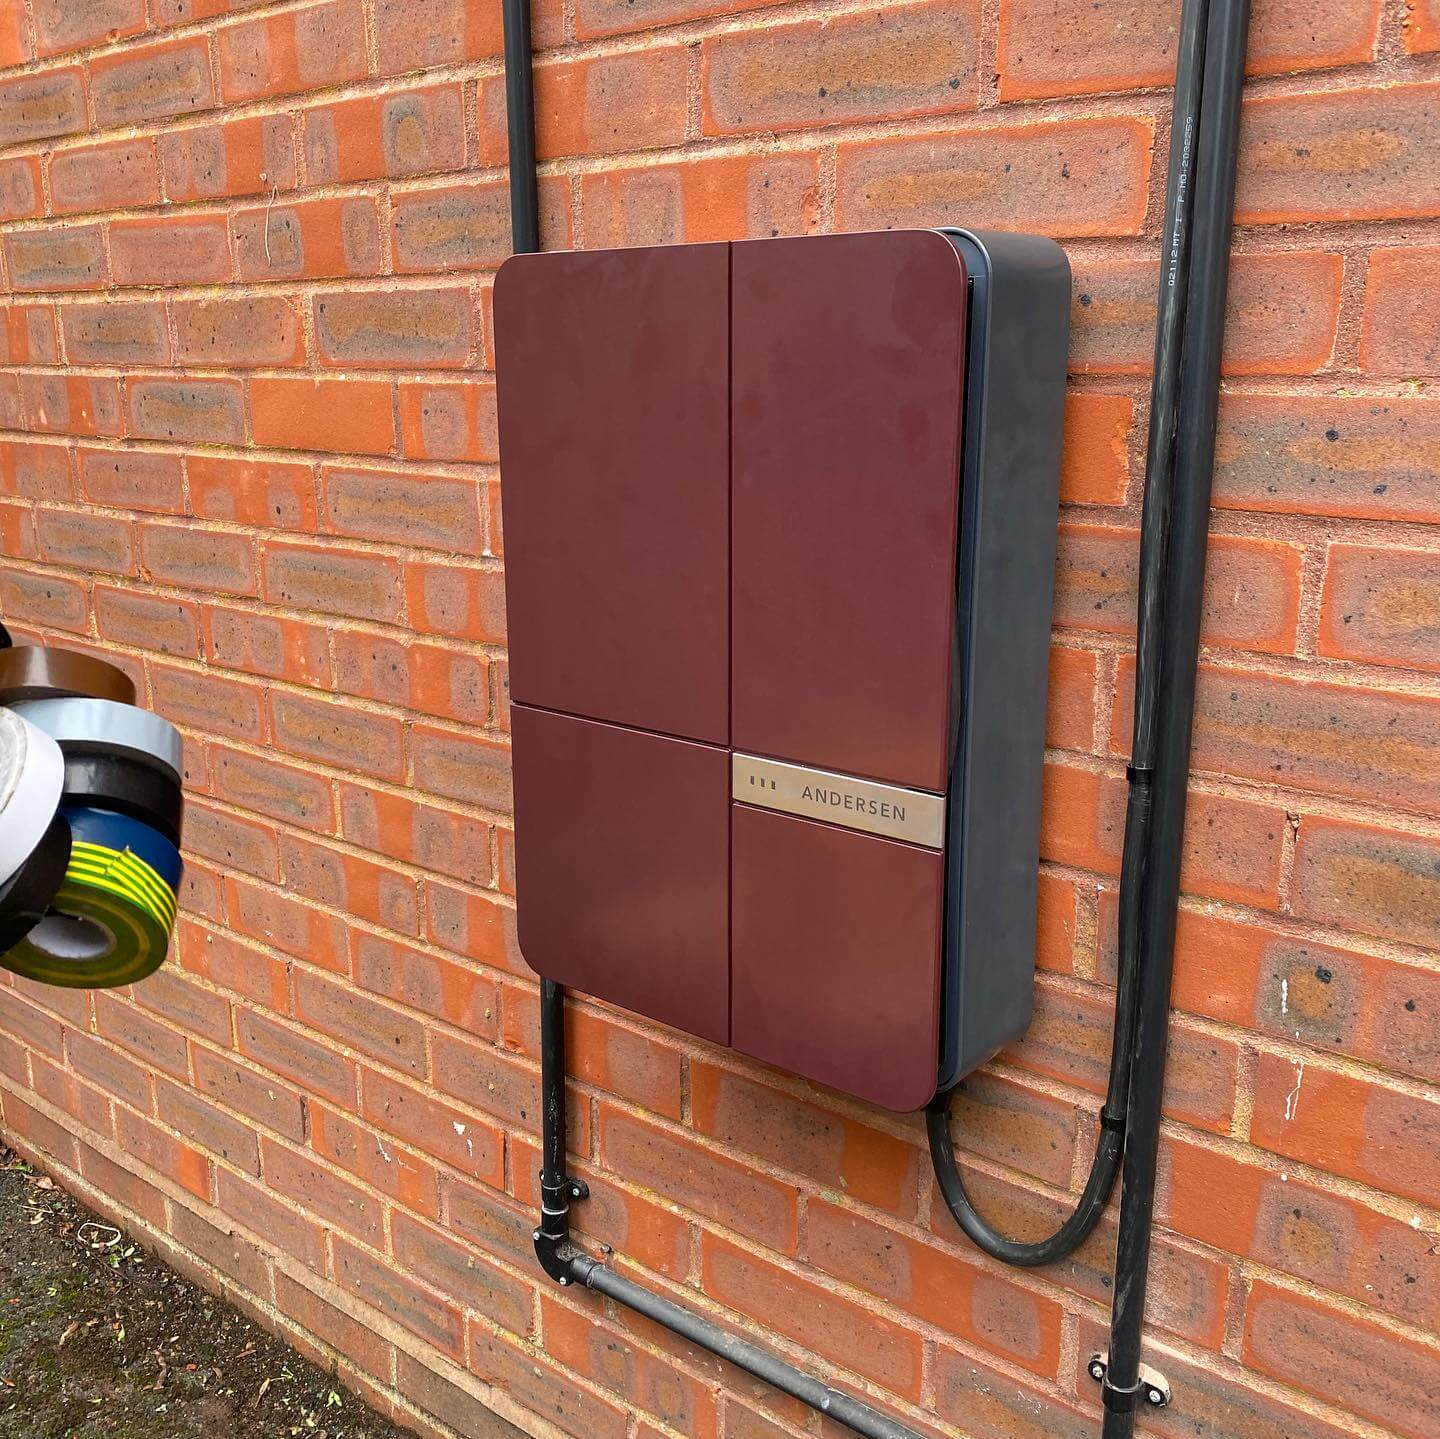 Andersen electric vehicle charger